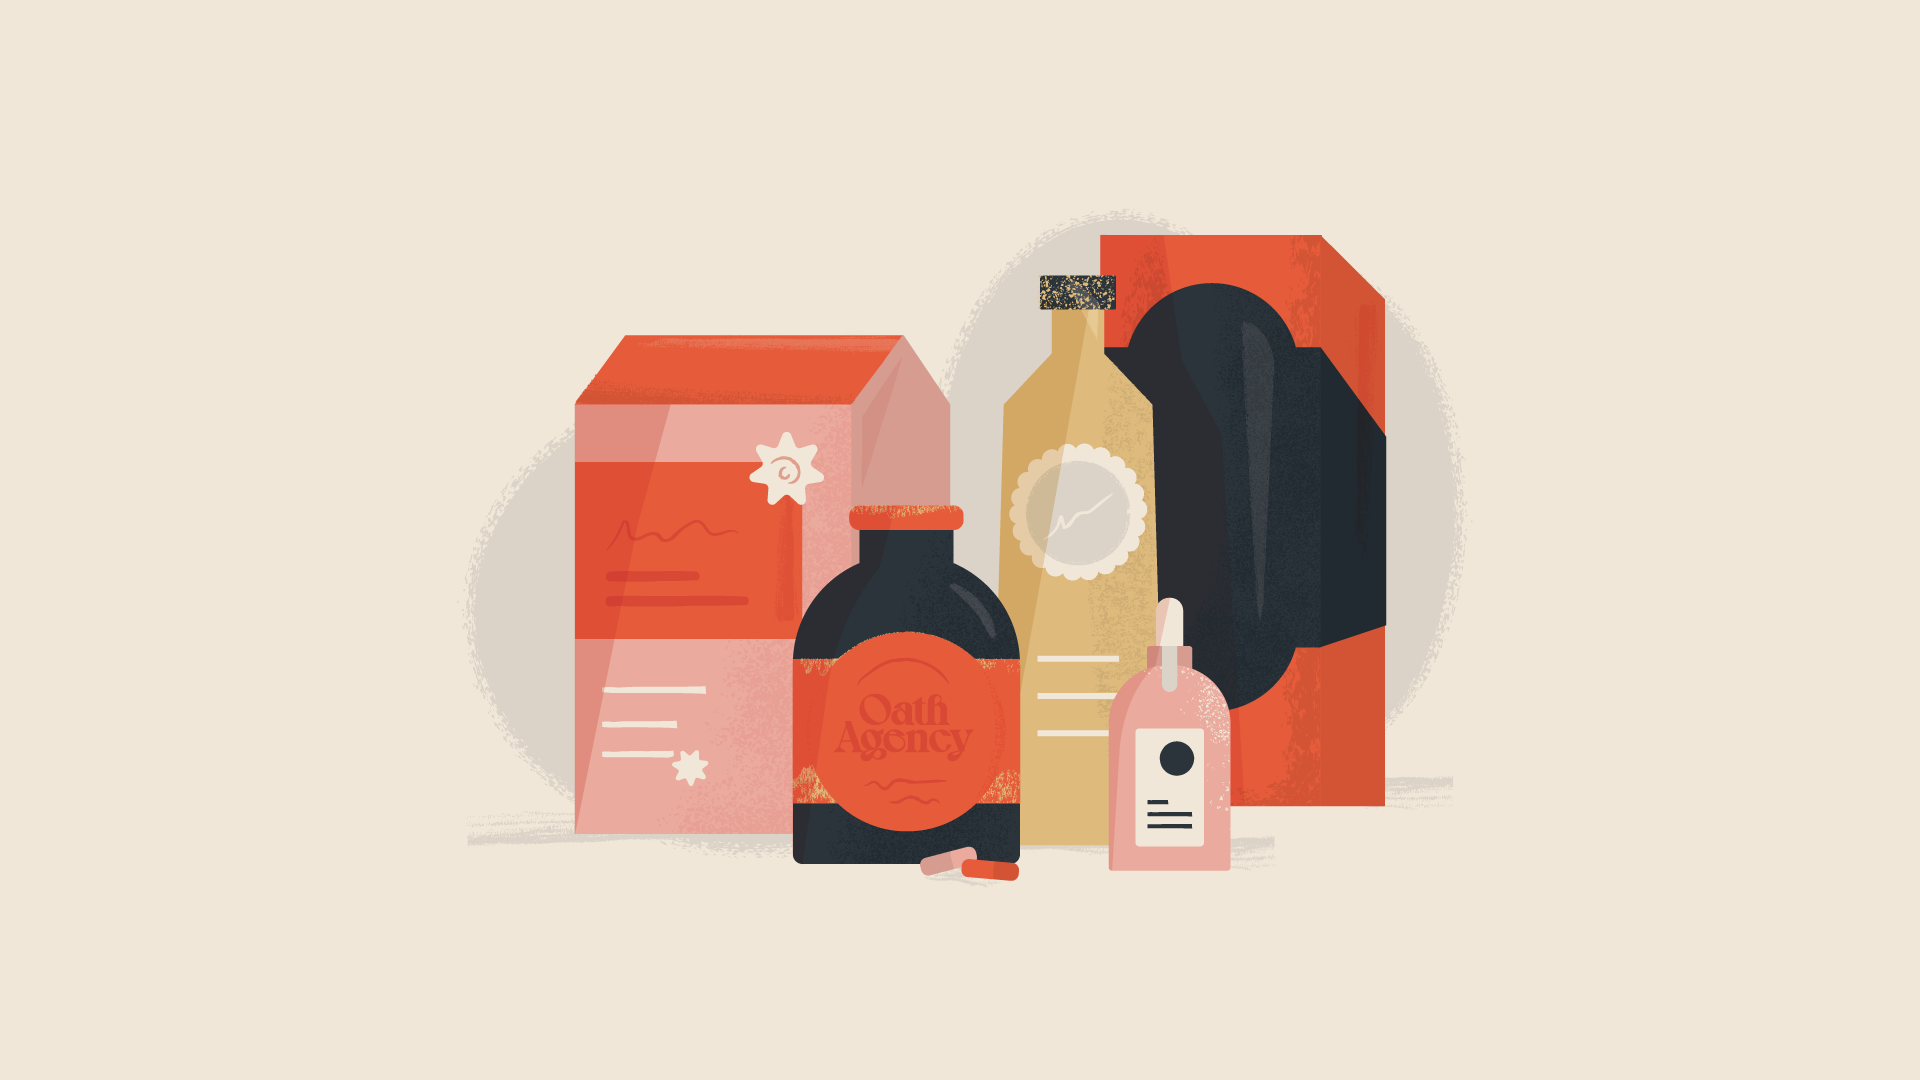 How Does Product Packaging Influence Consumer Decisions?